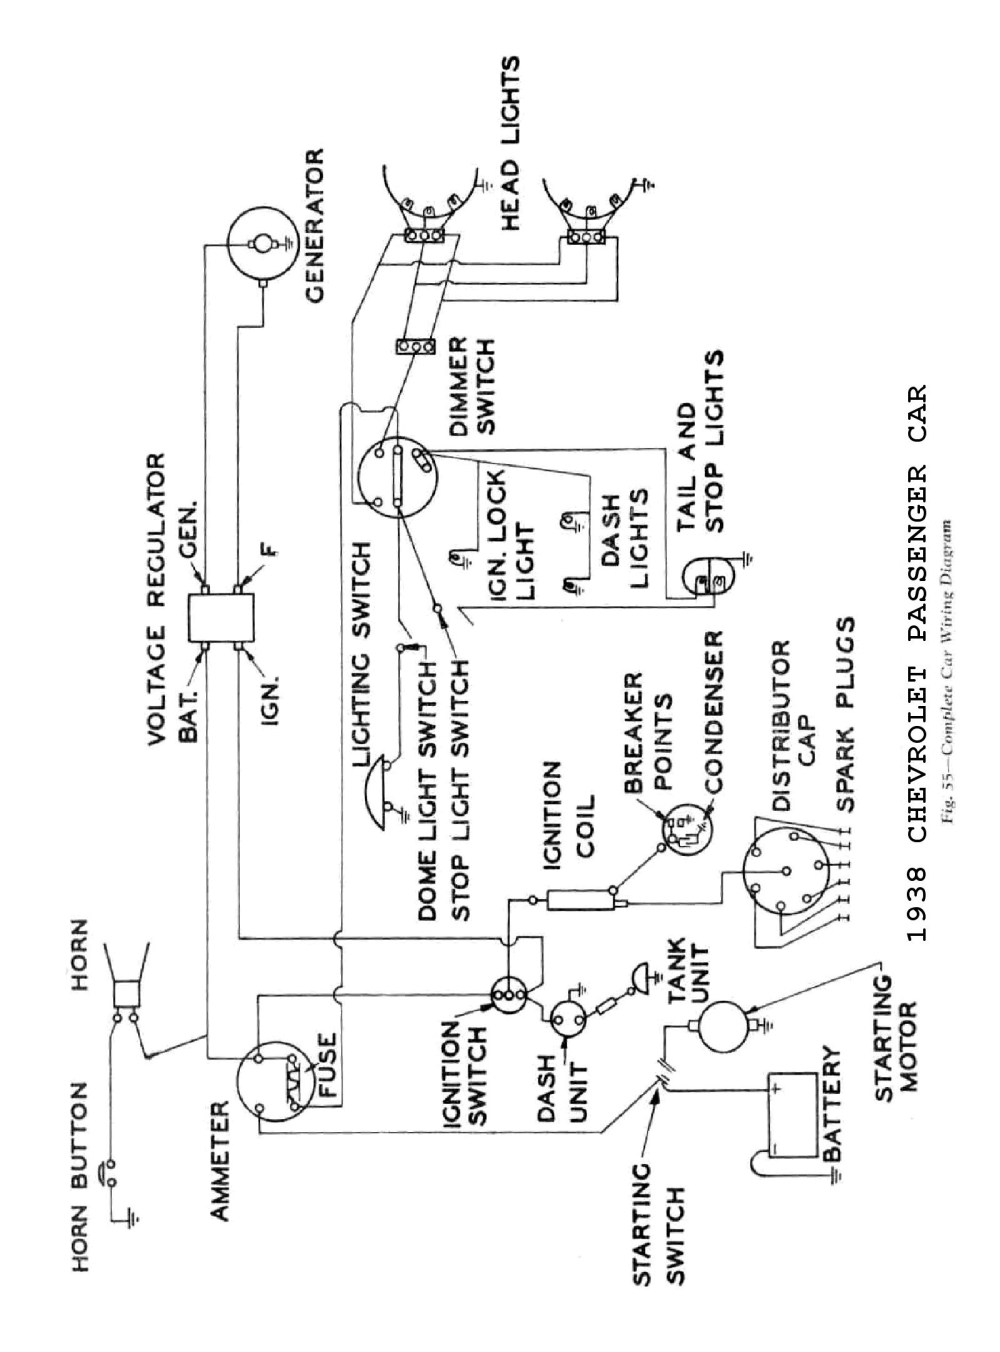 medium resolution of car dimmer switch wiring diagram chevy wiring diagrams